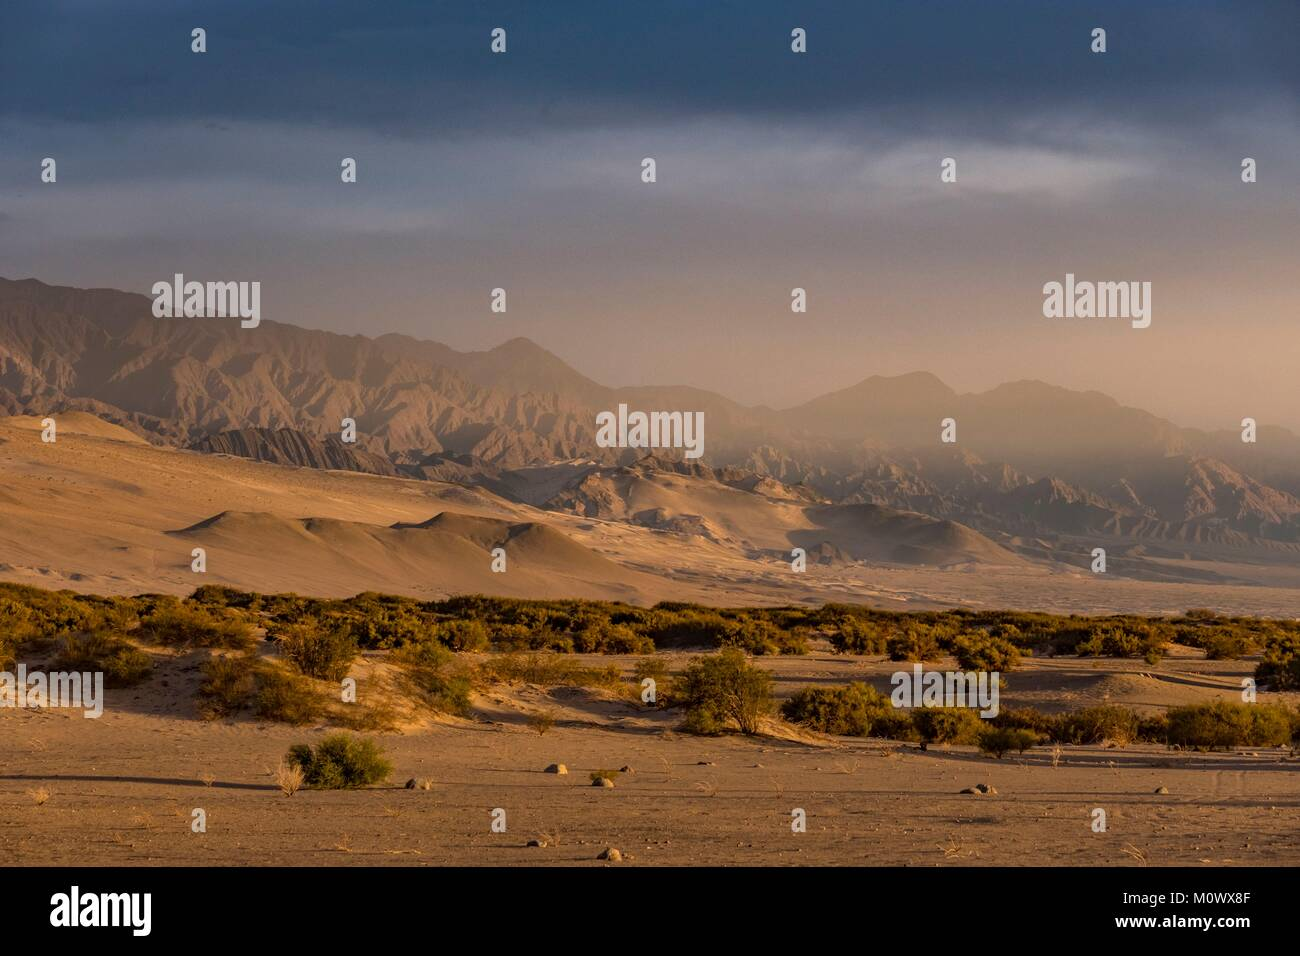 Argentina,Catamarca Province,Taton dunes,around Fiambala - Stock Image